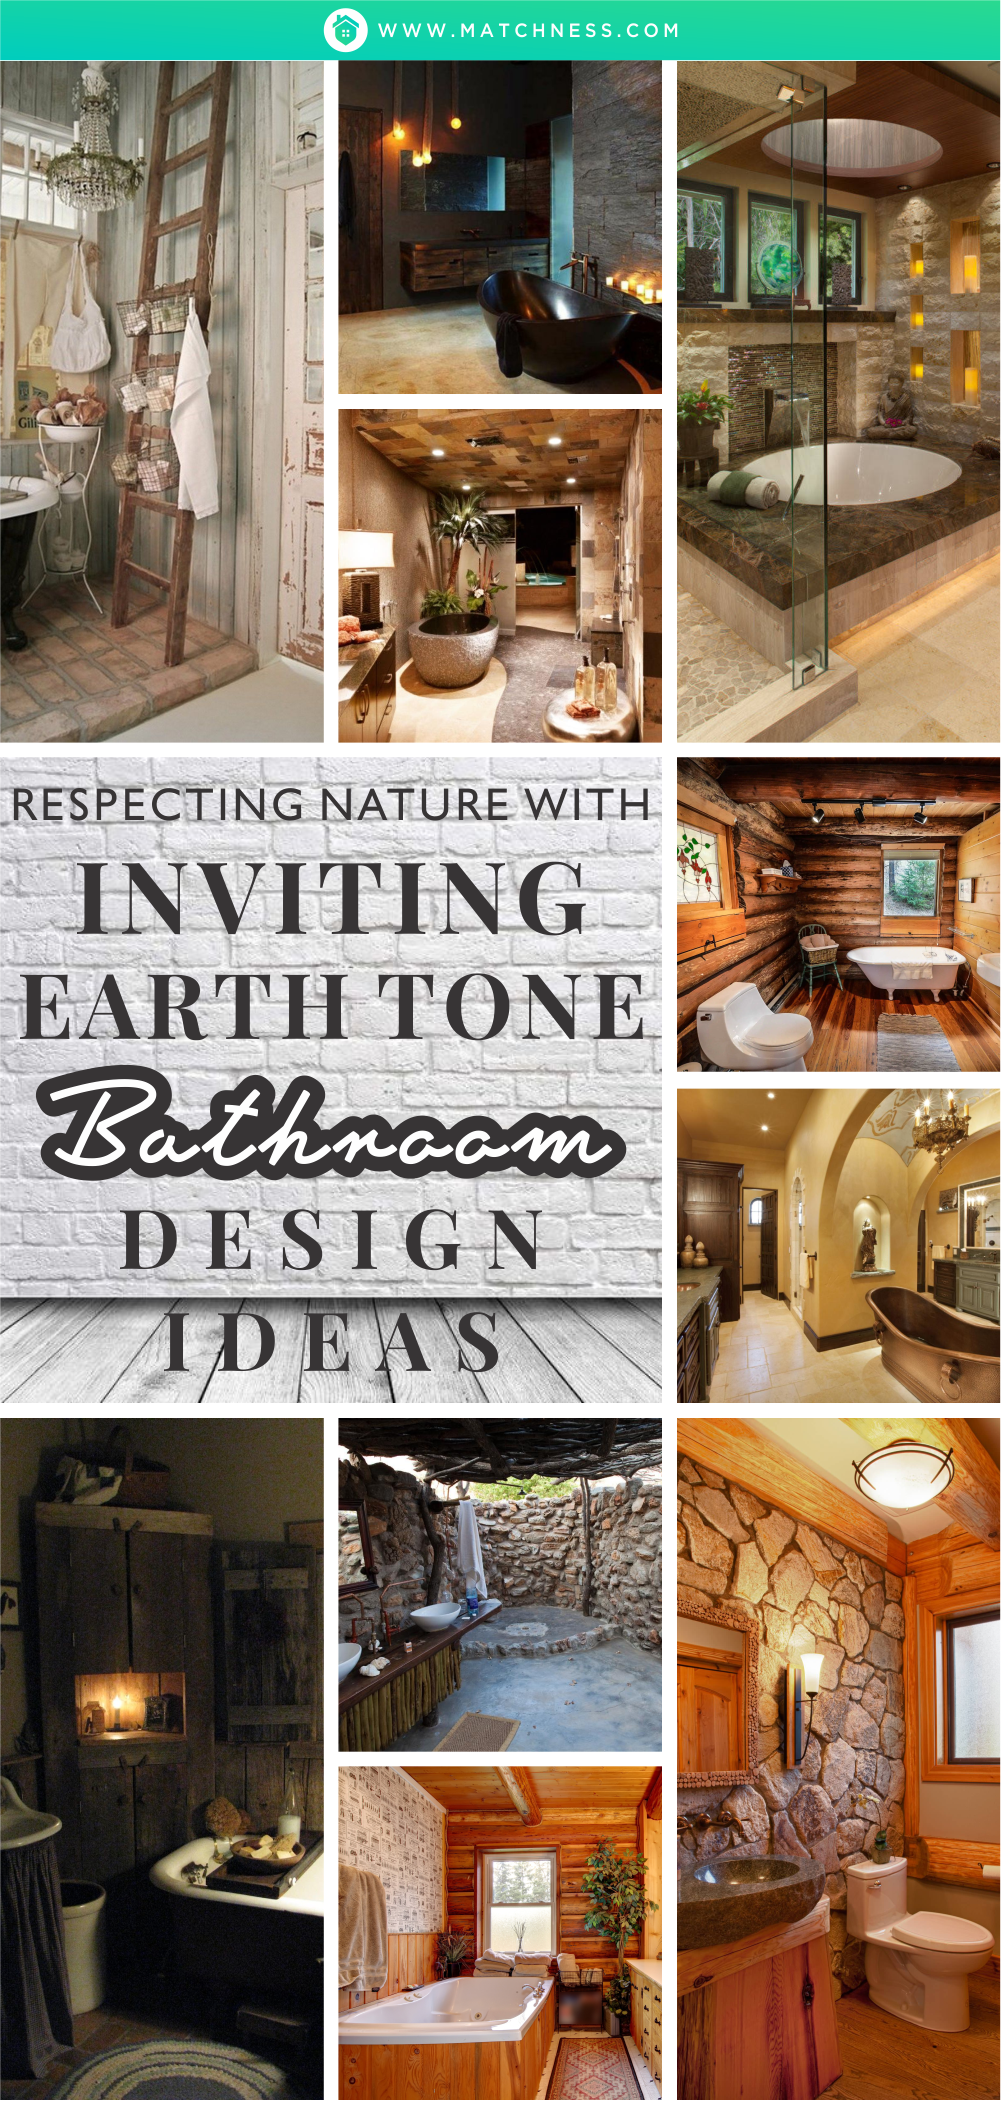 Respecting-nature-with-inviting-earth-tone-bathroom-design-ideas-1